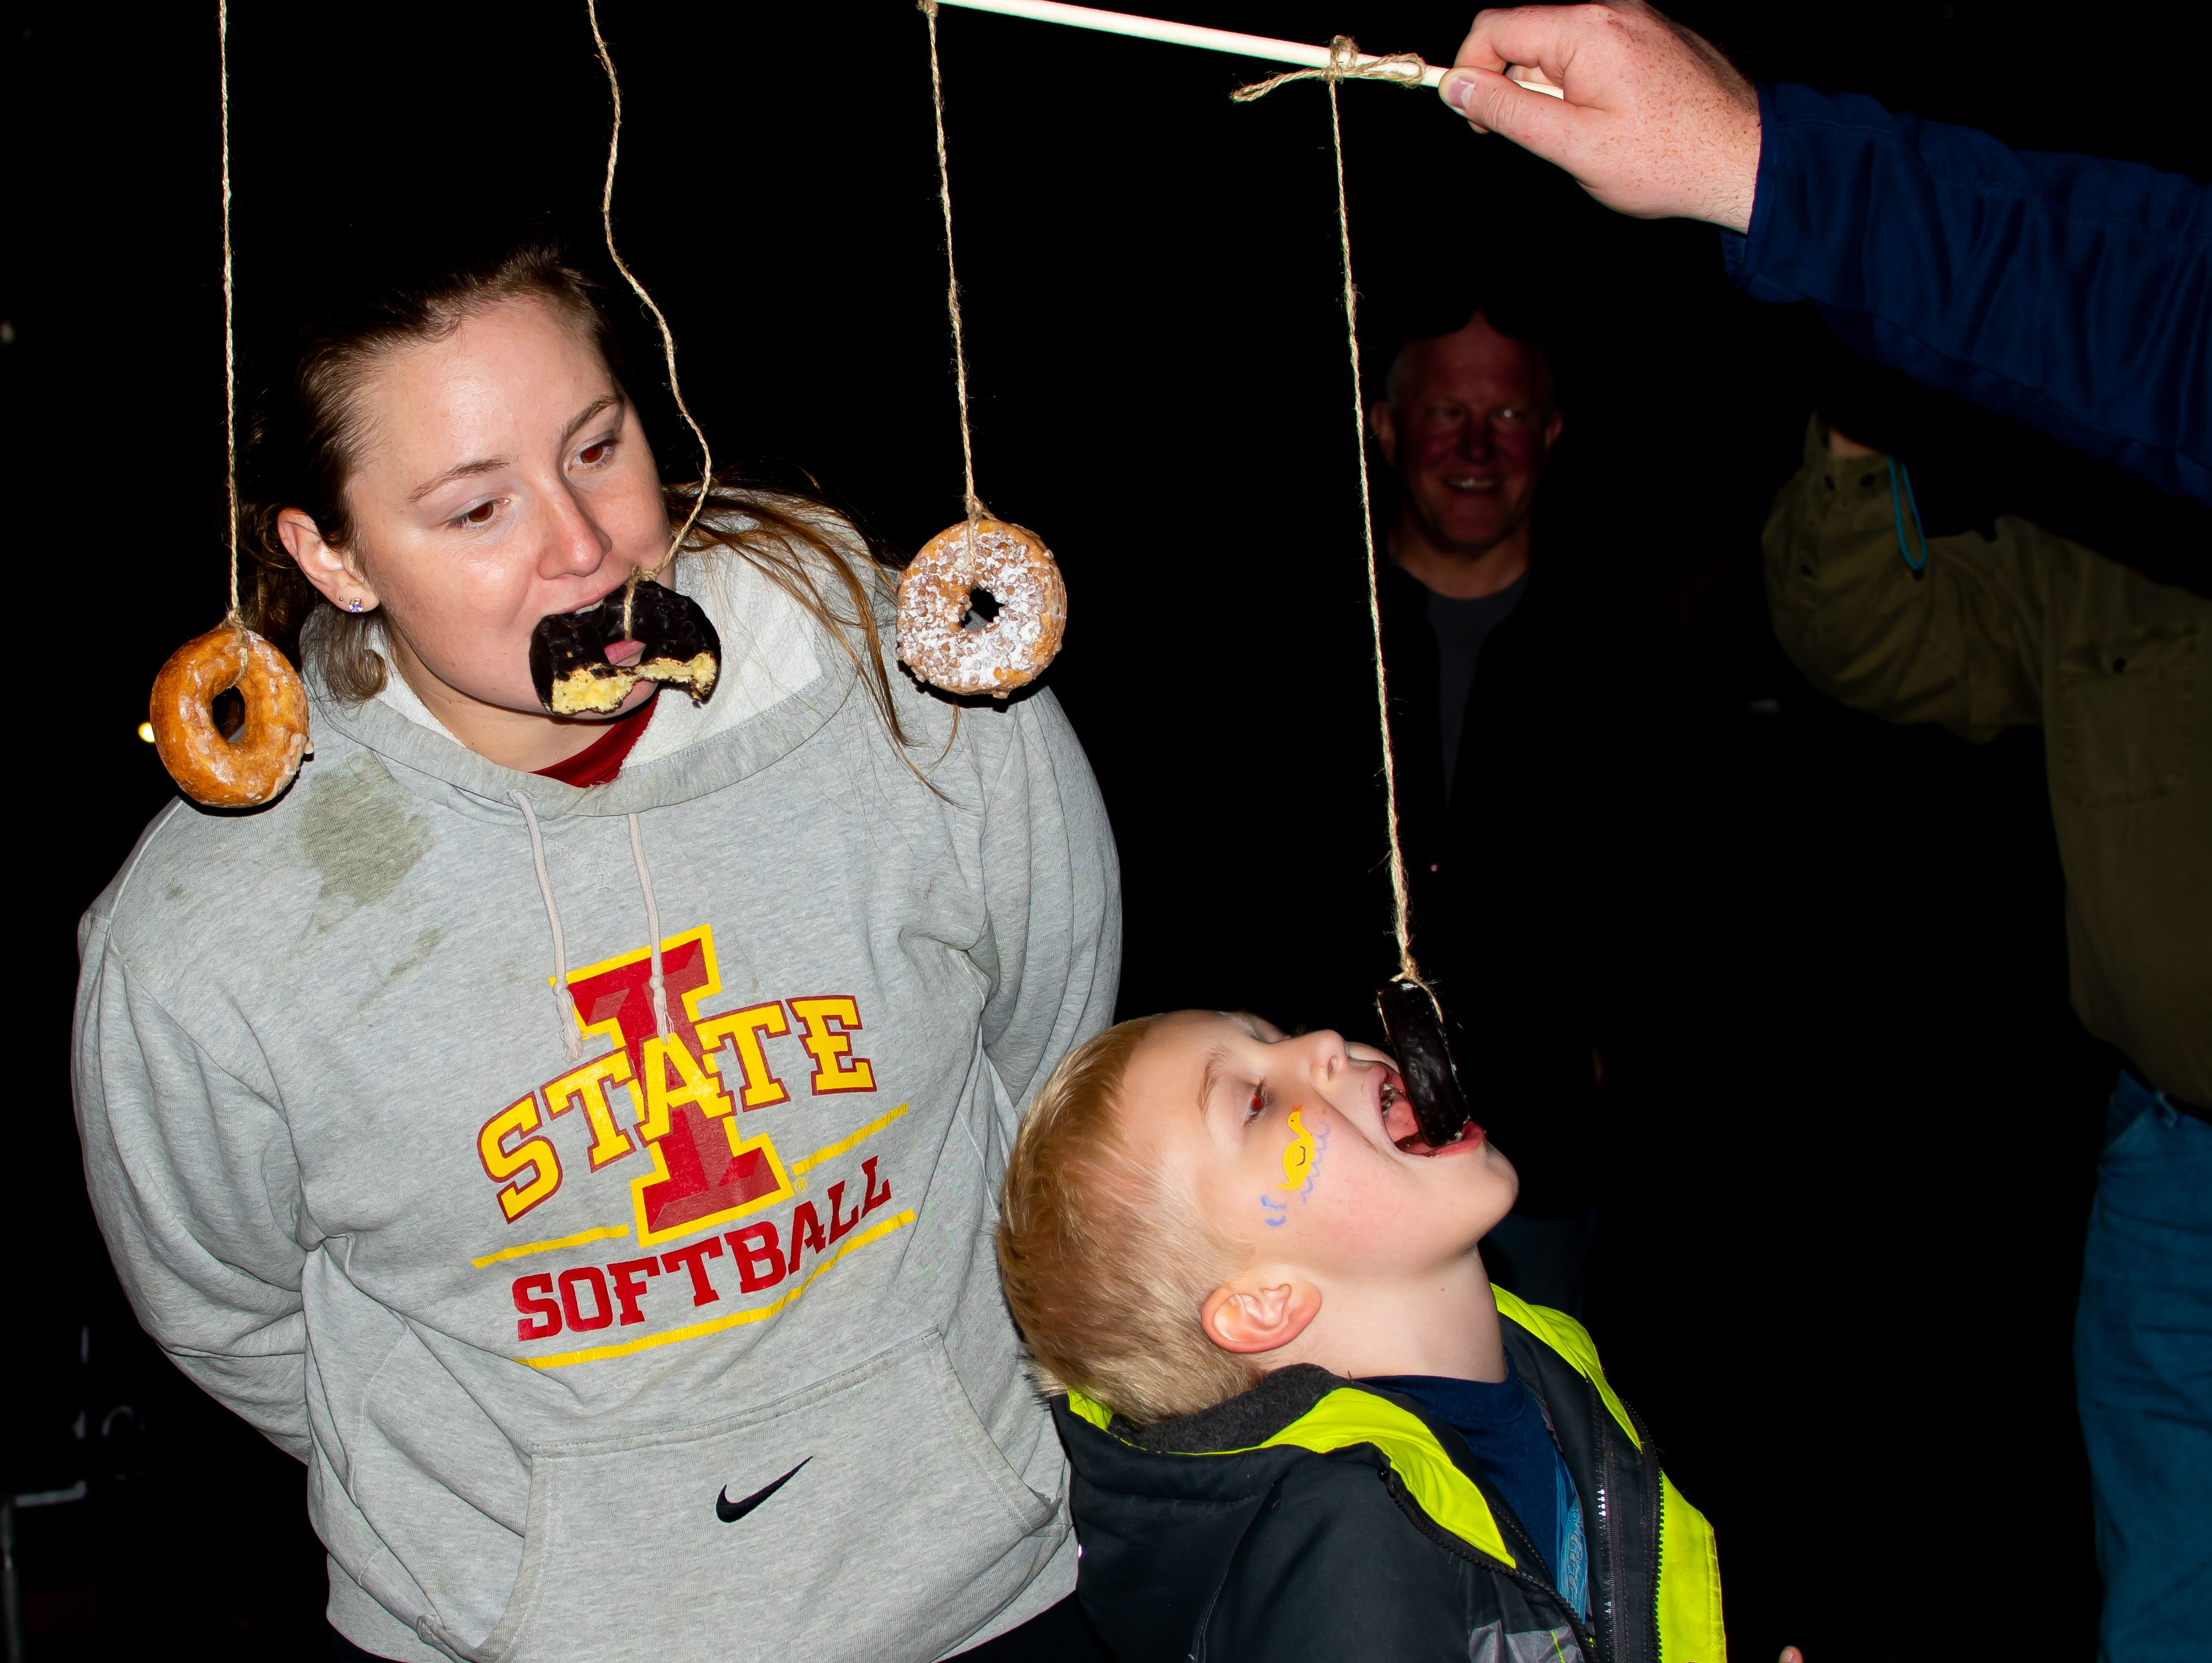 Sammie Hildreth, of Johnston, and Carson Budde, 6, of Windsor Heights, see who can eat donuts the fastest with no hands on Tuesday, Oct. 16, 2018 for the Waukee Area Chamber of Commerce fall after hours party at Timberline Campground in Waukee.